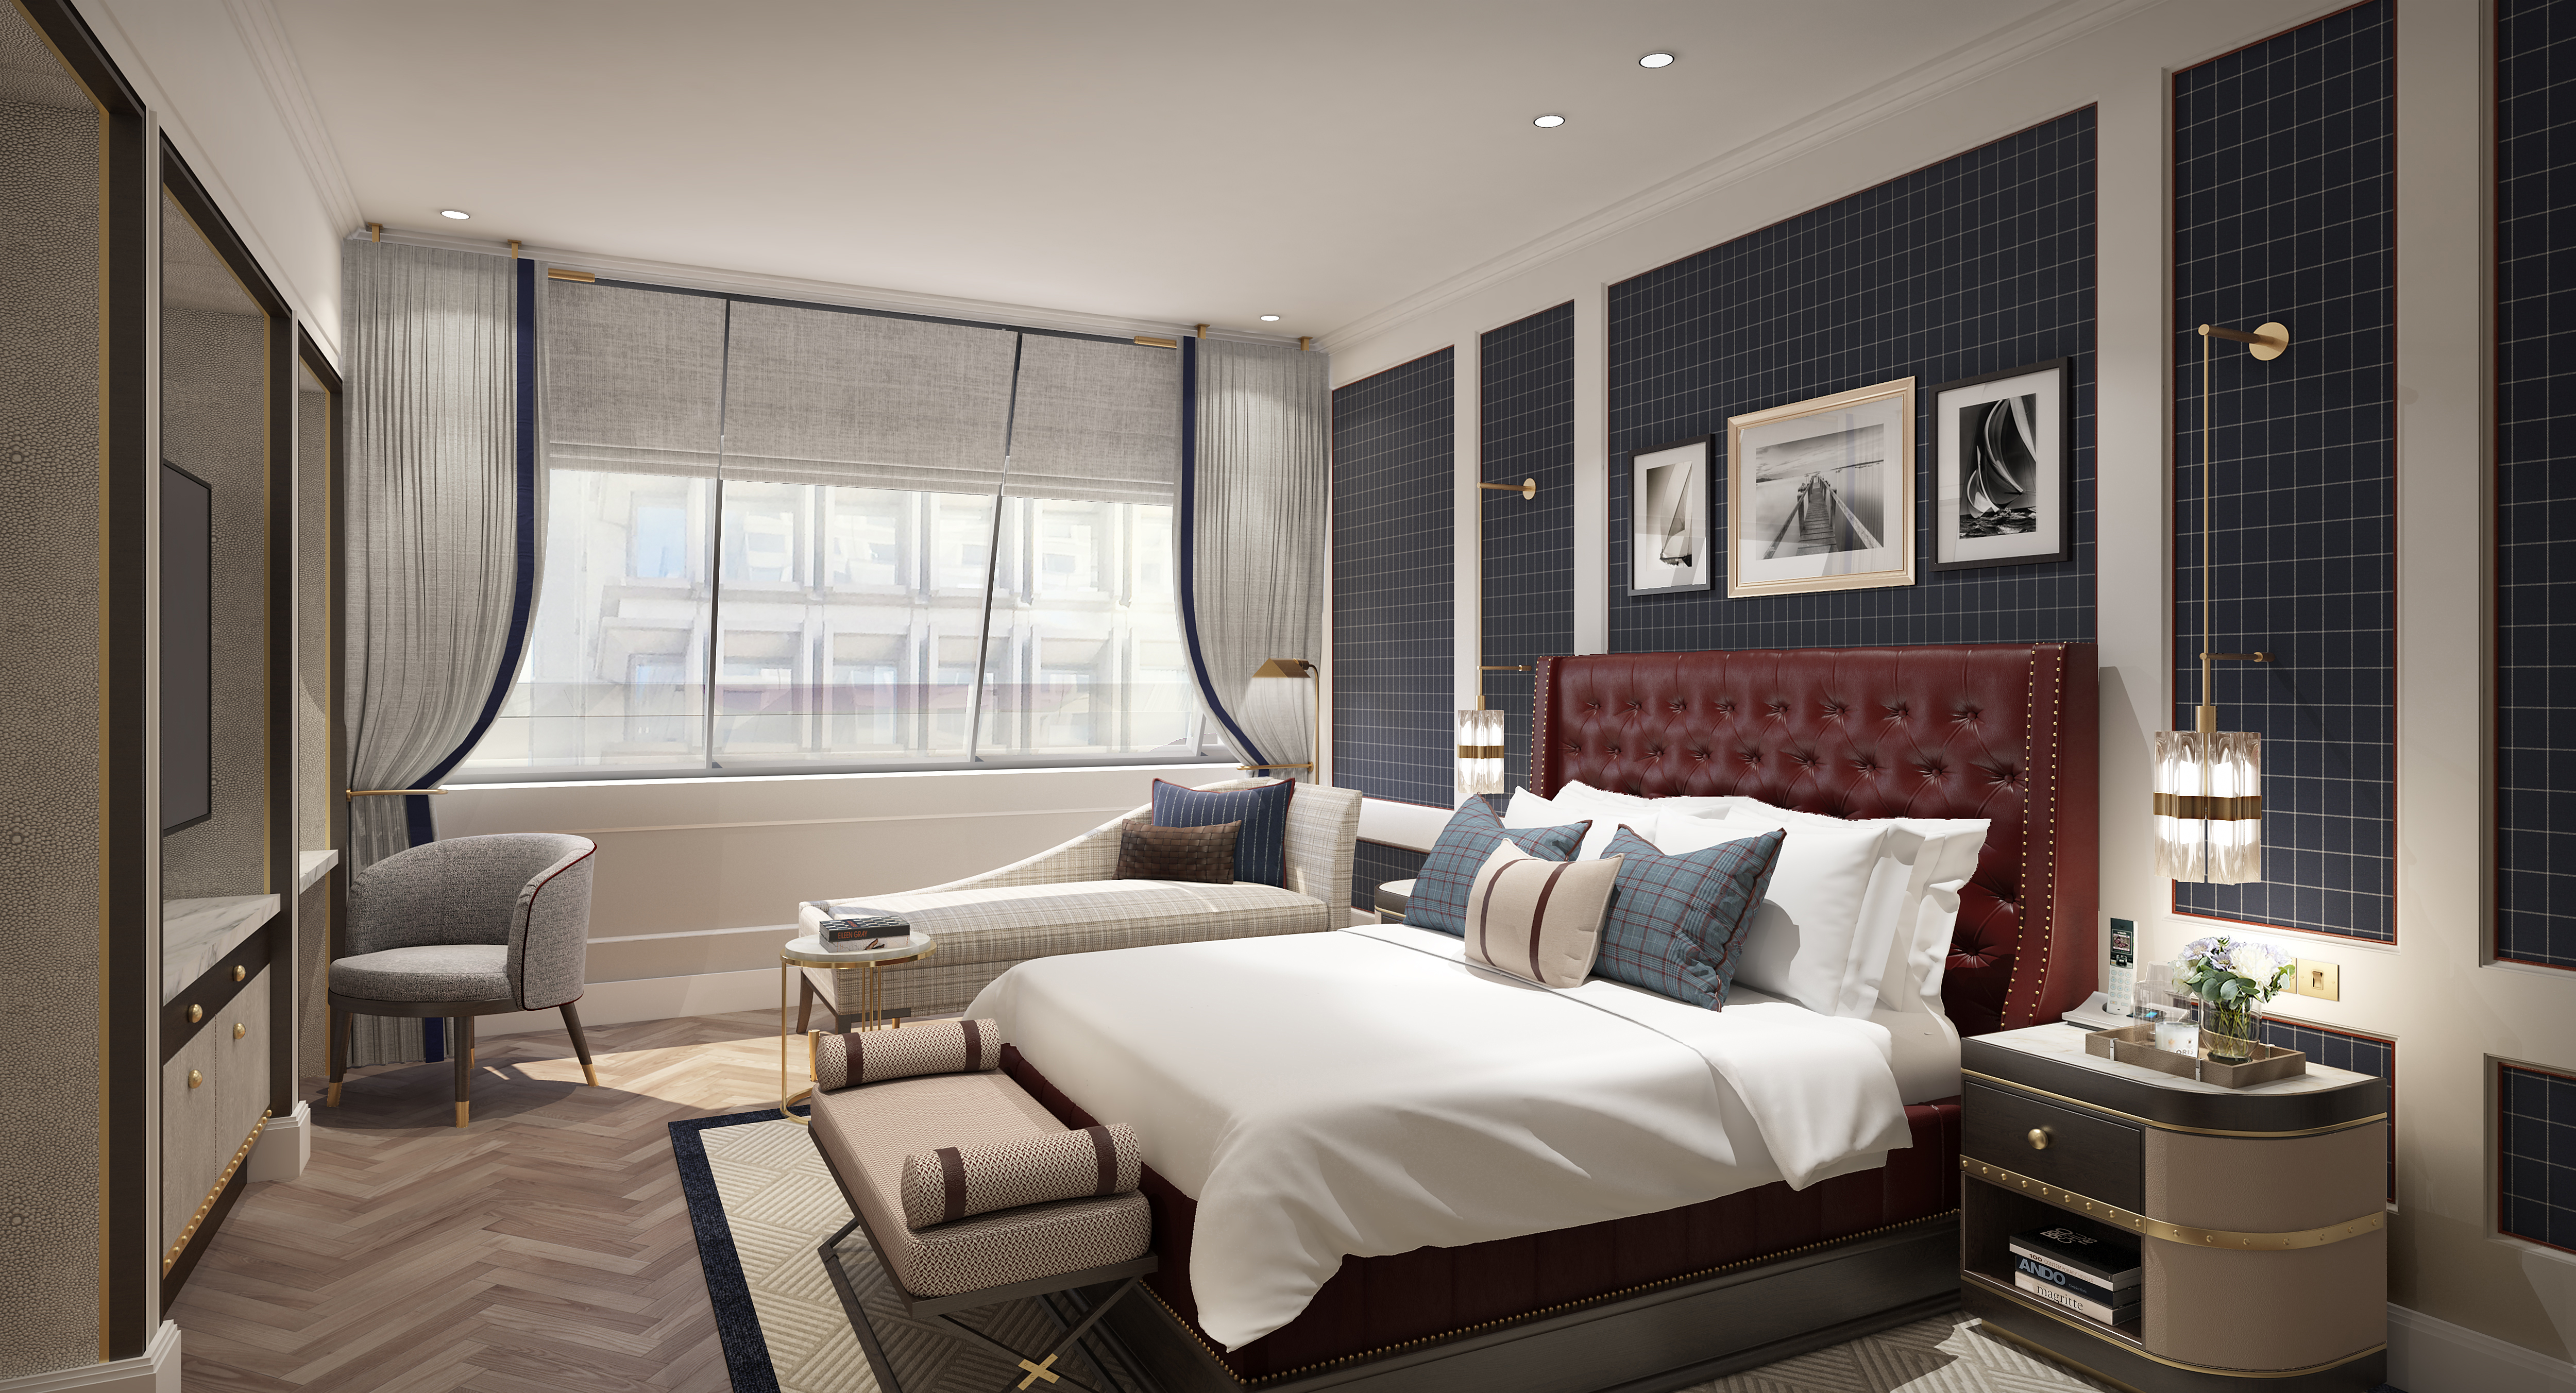 Rendering of a large hotel room with a bed.